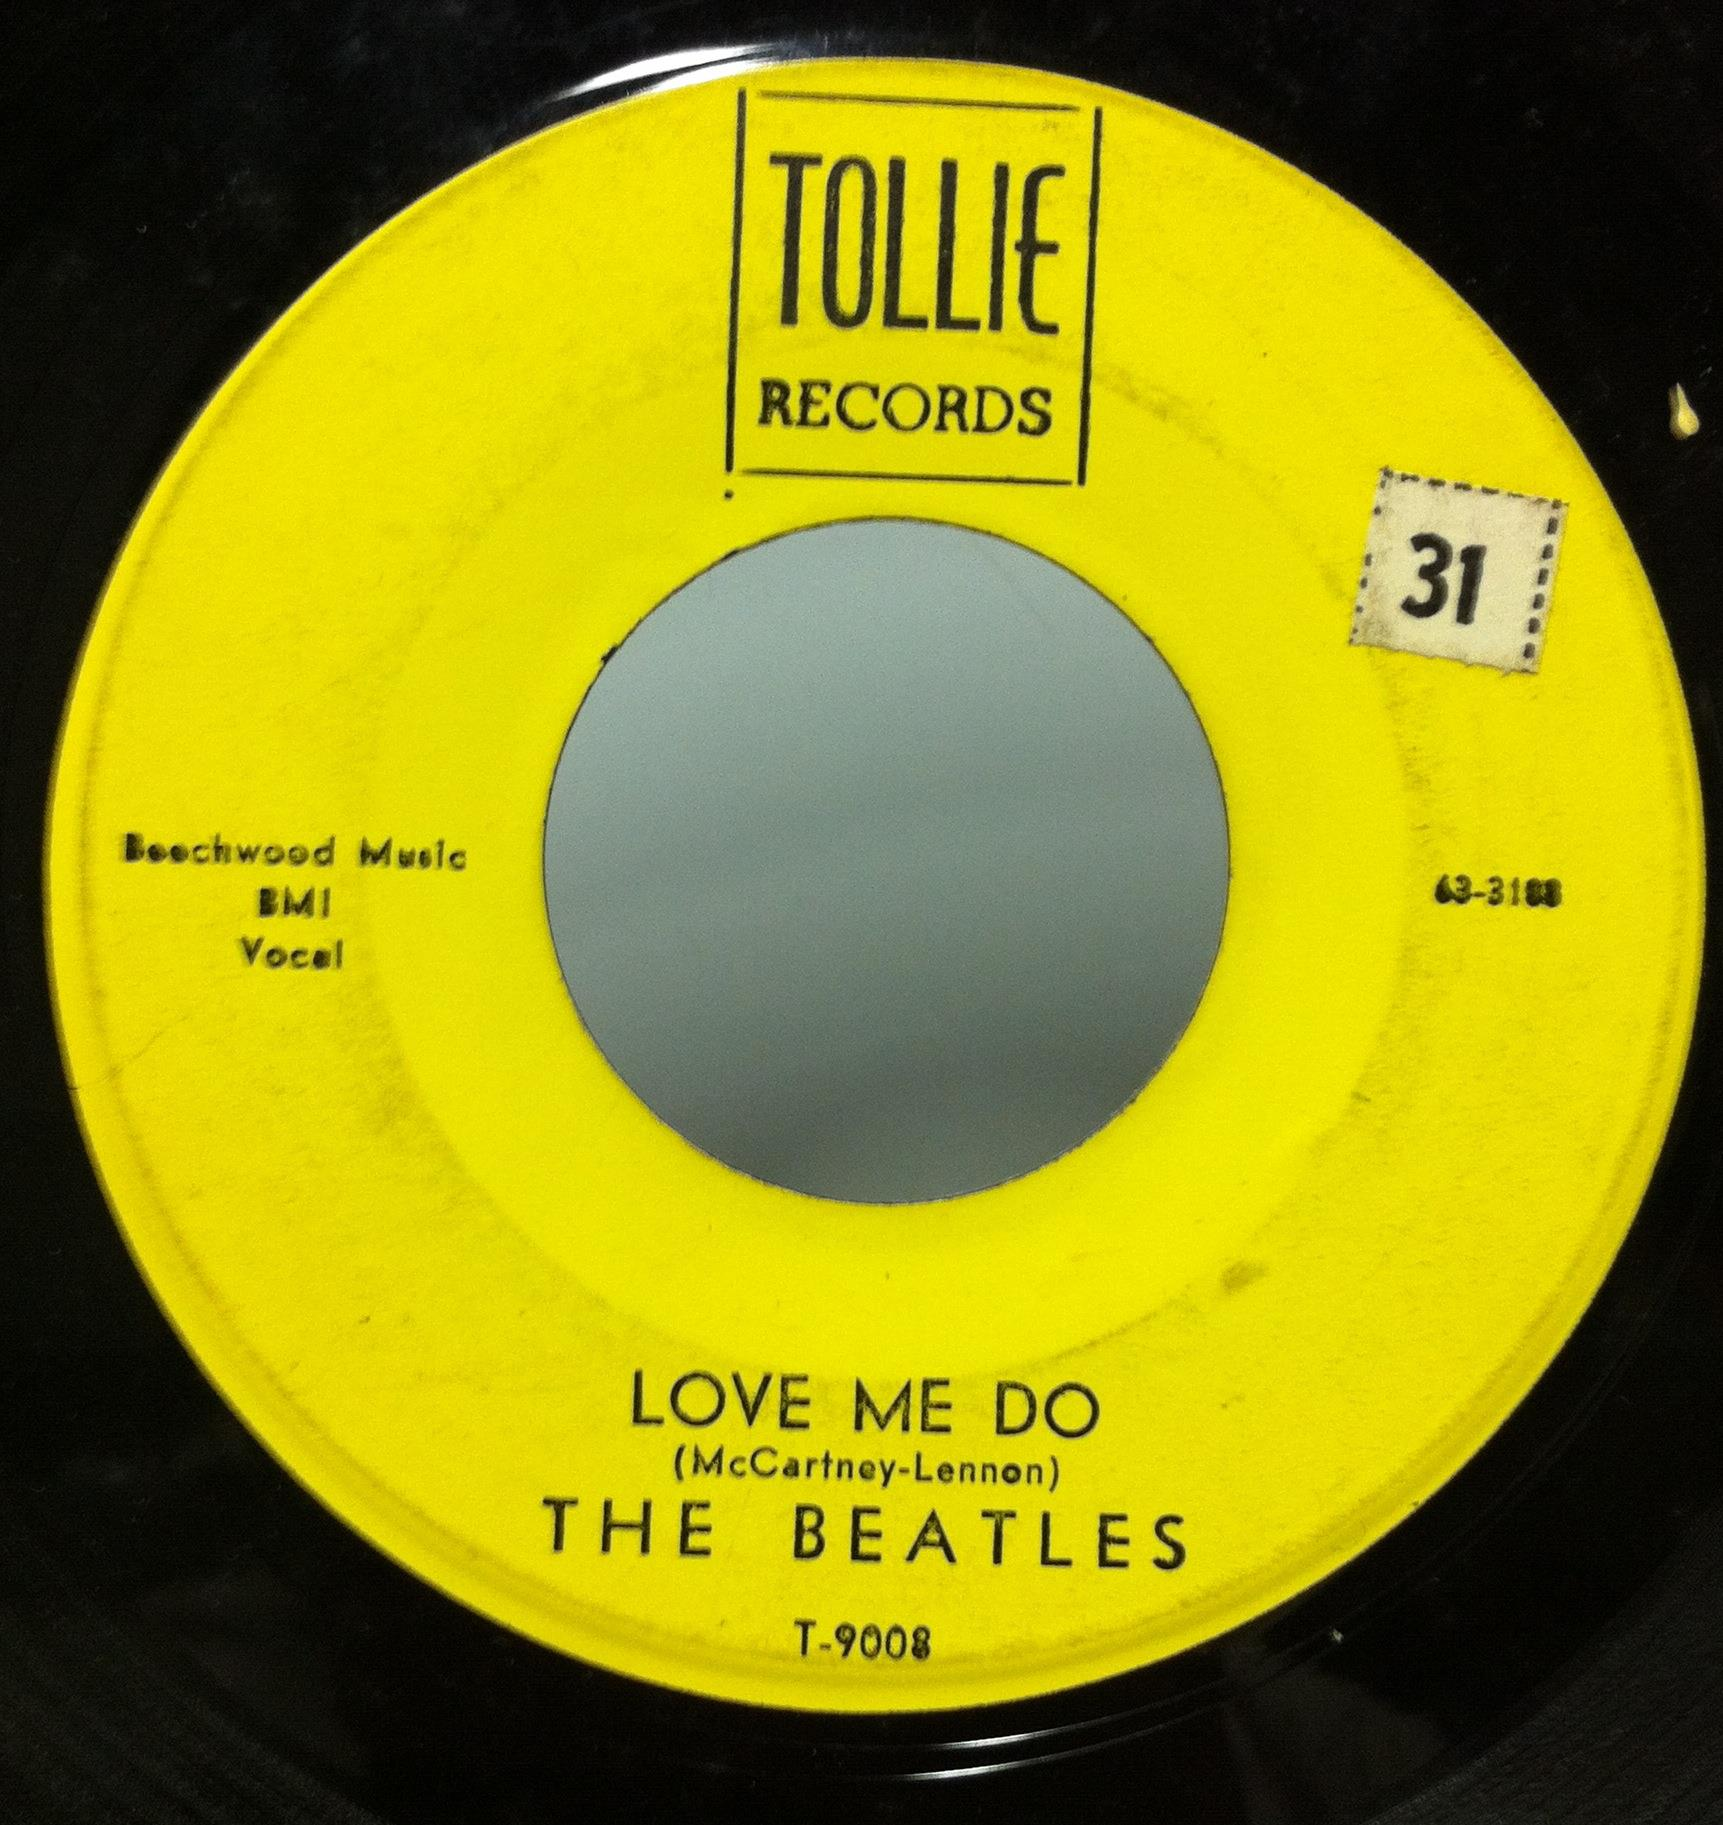 "BEATLES - The Beatles Love Me Do / P.s. I Love You 7"" Vg T-9008 Tollie 1964 Record (love Me Do / P.s. I L"